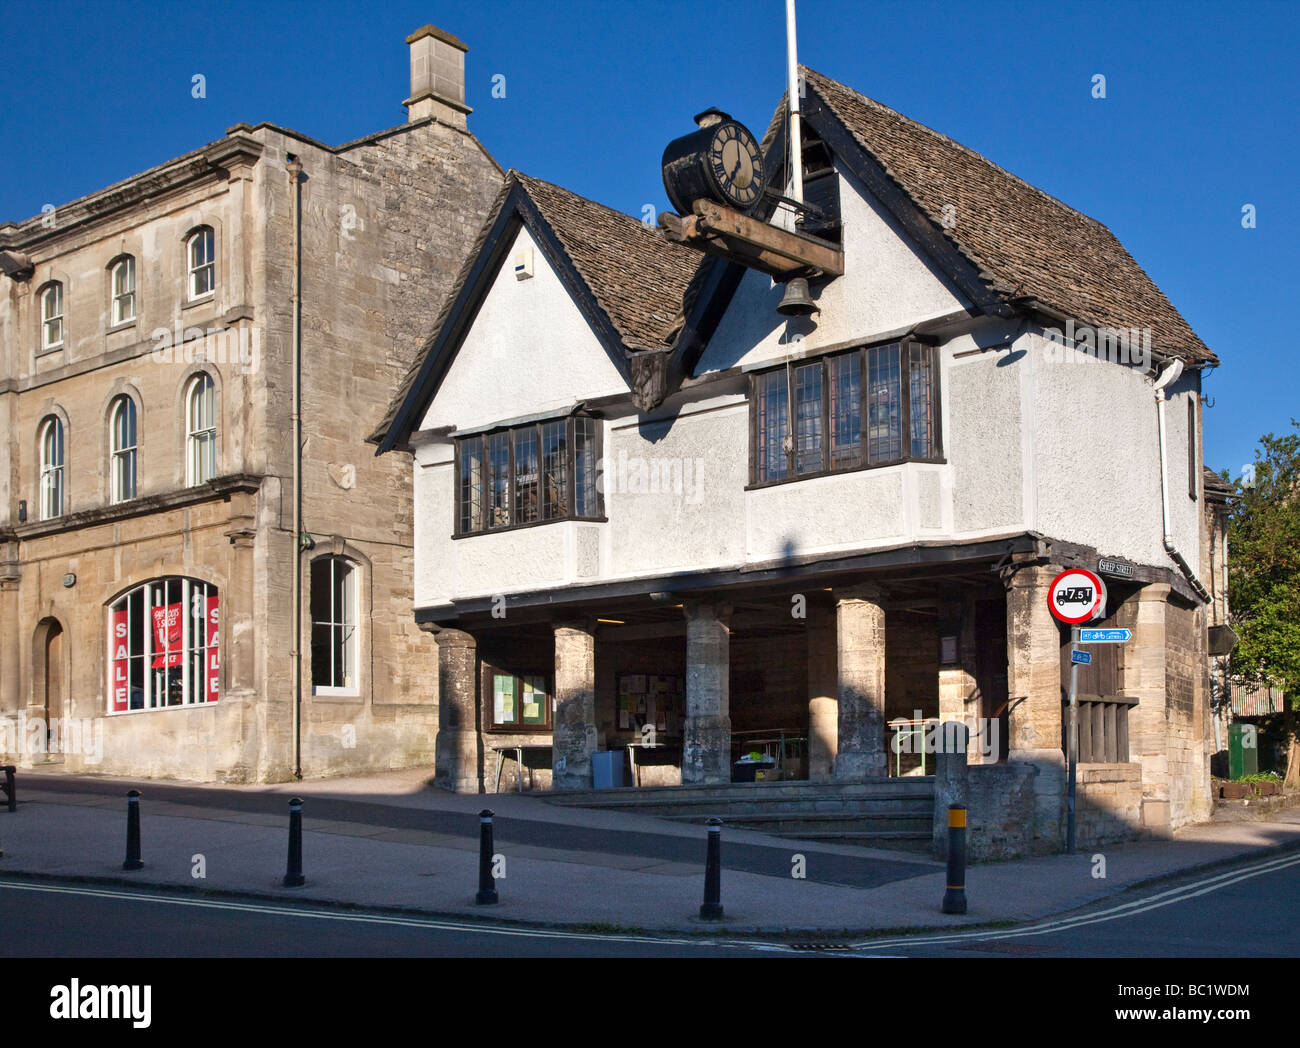 The Old Town Hall High Street Burford Oxfordshire in the Cotswolds - Stock Image